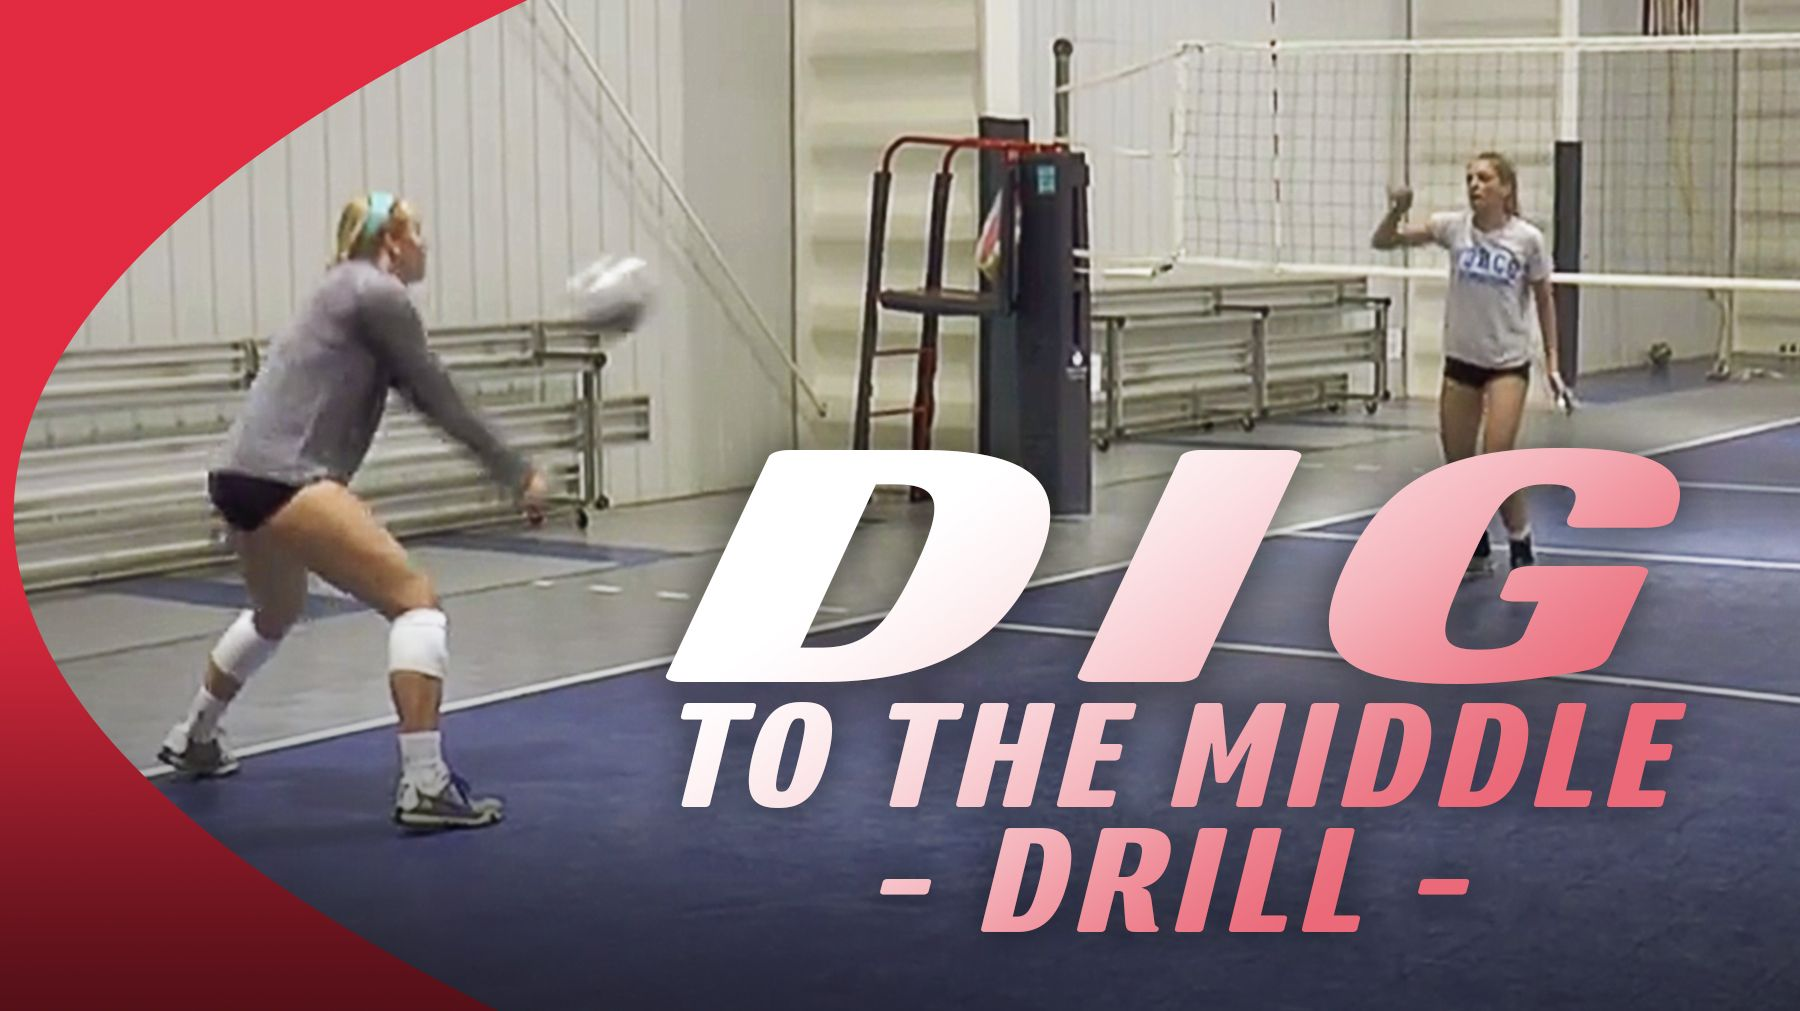 Jim Stone S Dig To The Middle Drill The Art Of Coaching Volleyball Coaching Volleyball Volleyball Drill